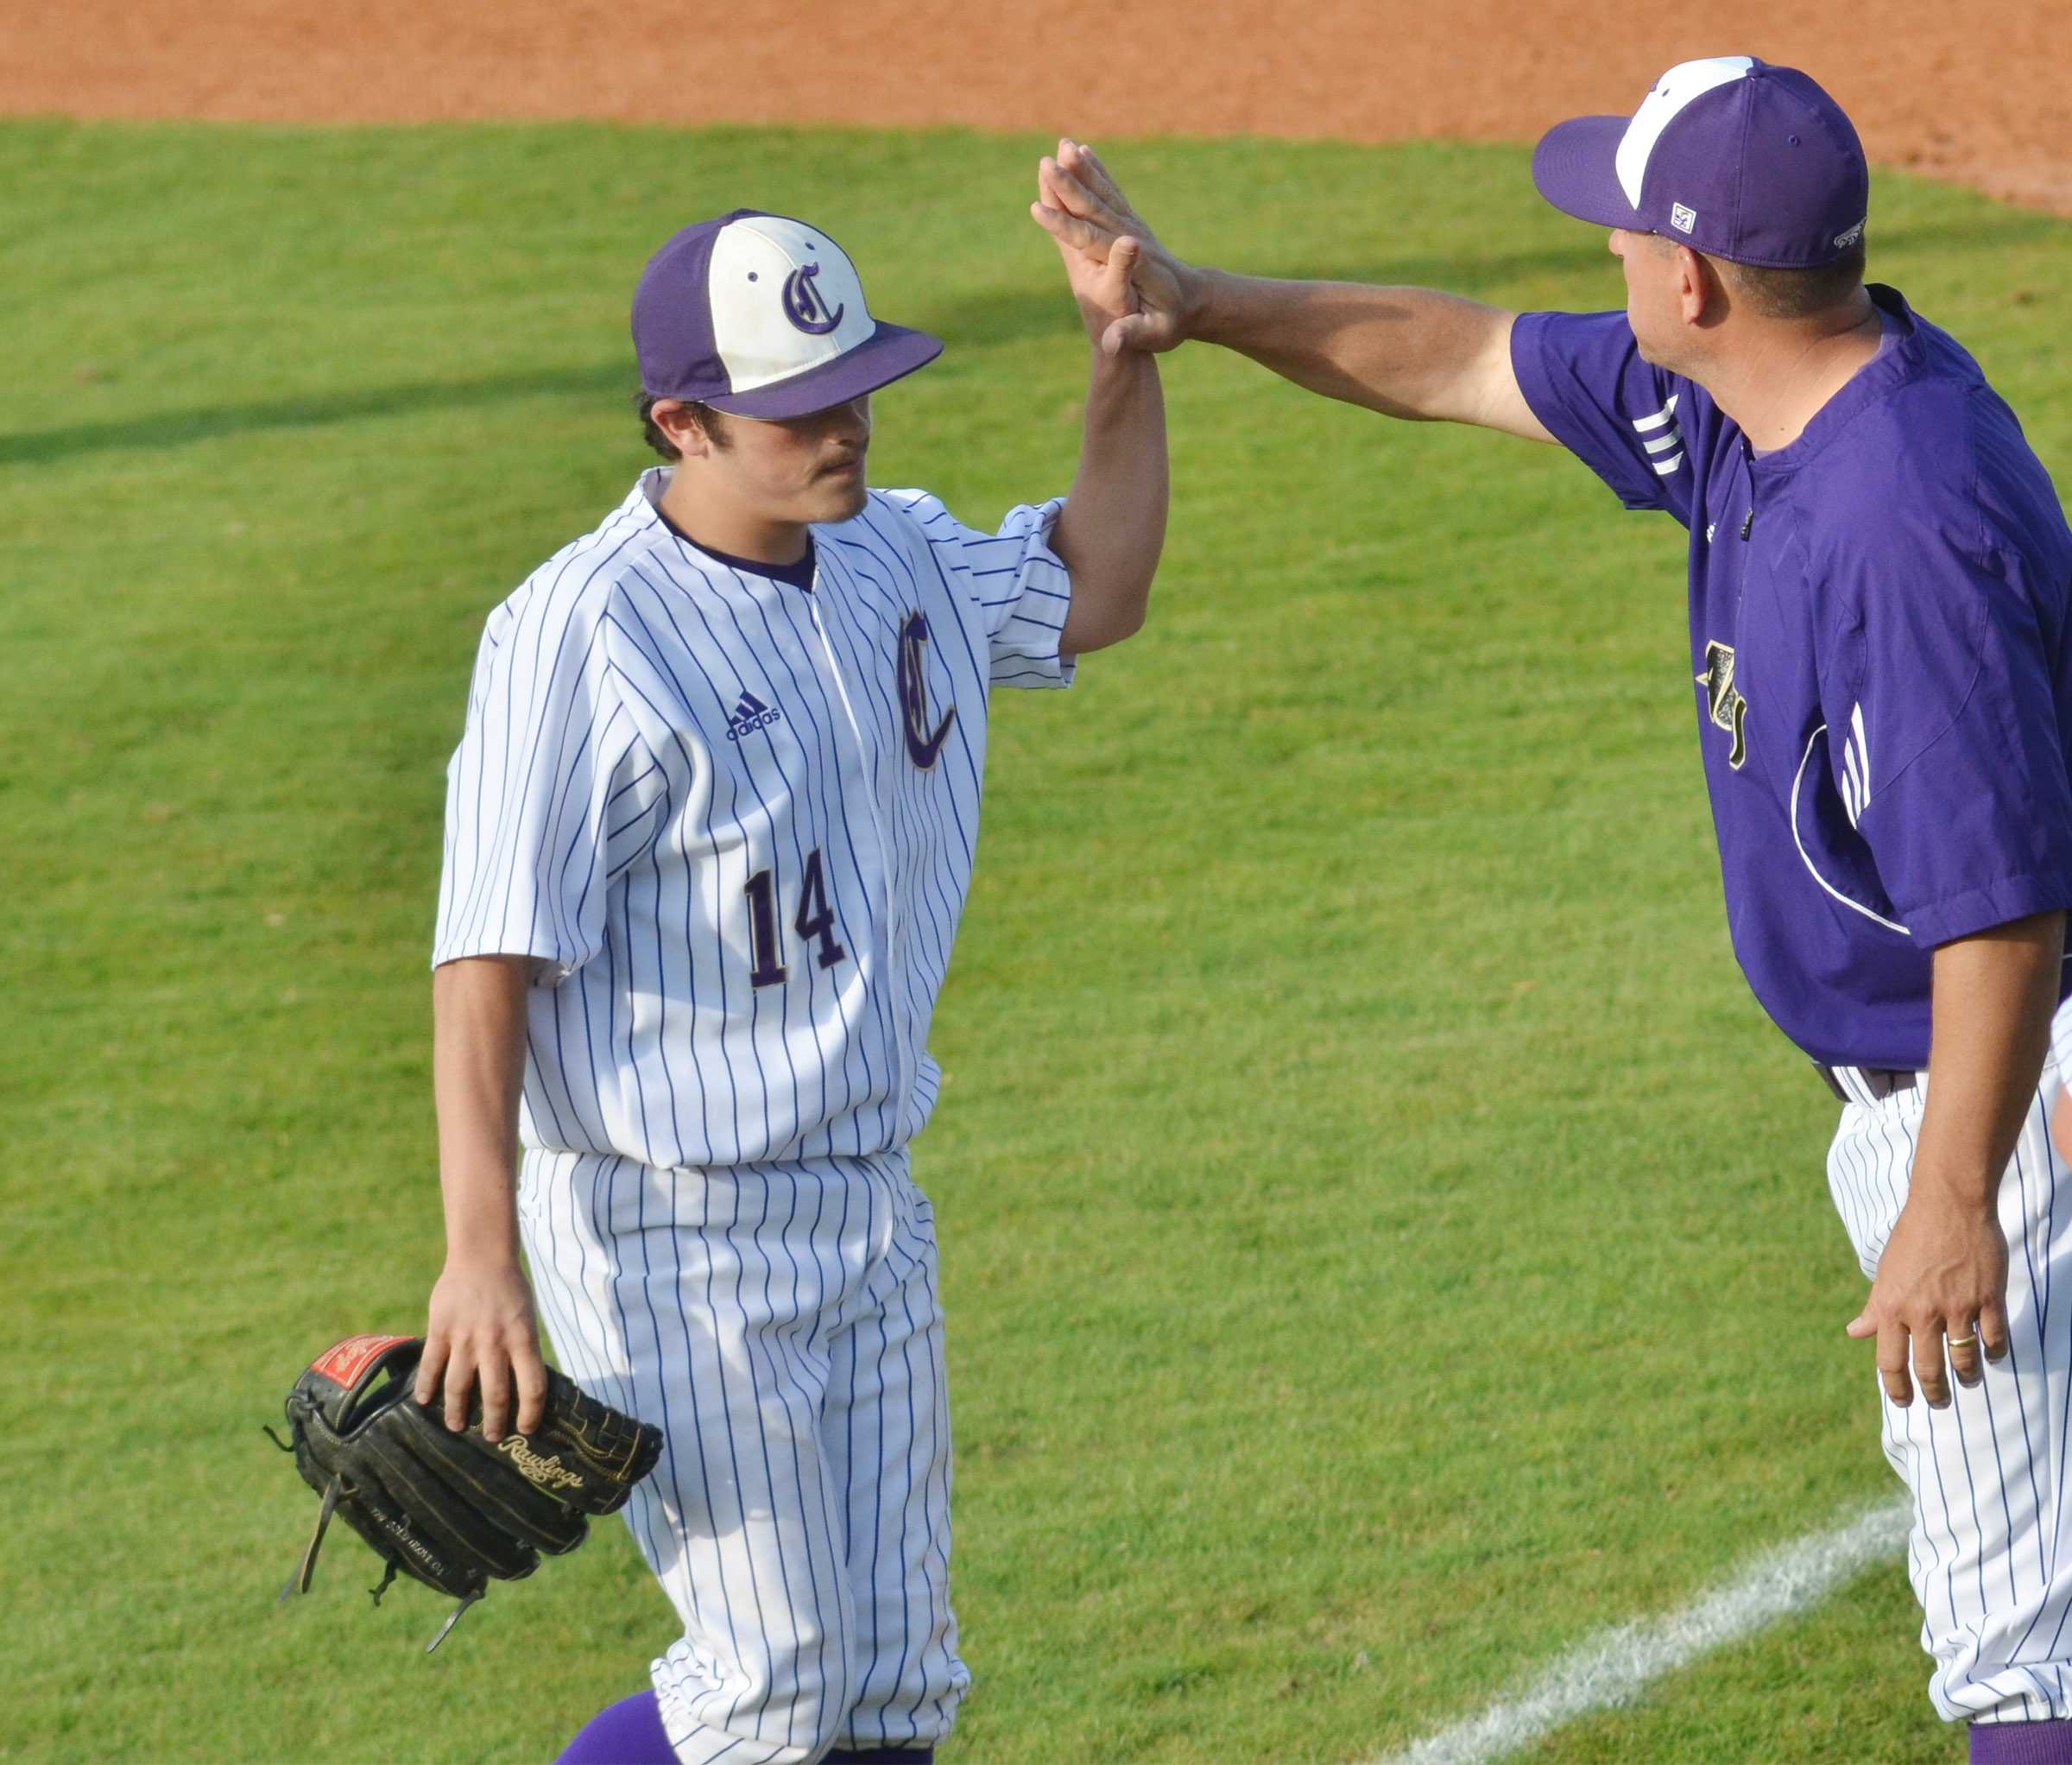 CHS head baseball coach Kirby Smith high fives sophomore Ryan Kearney after an inning.